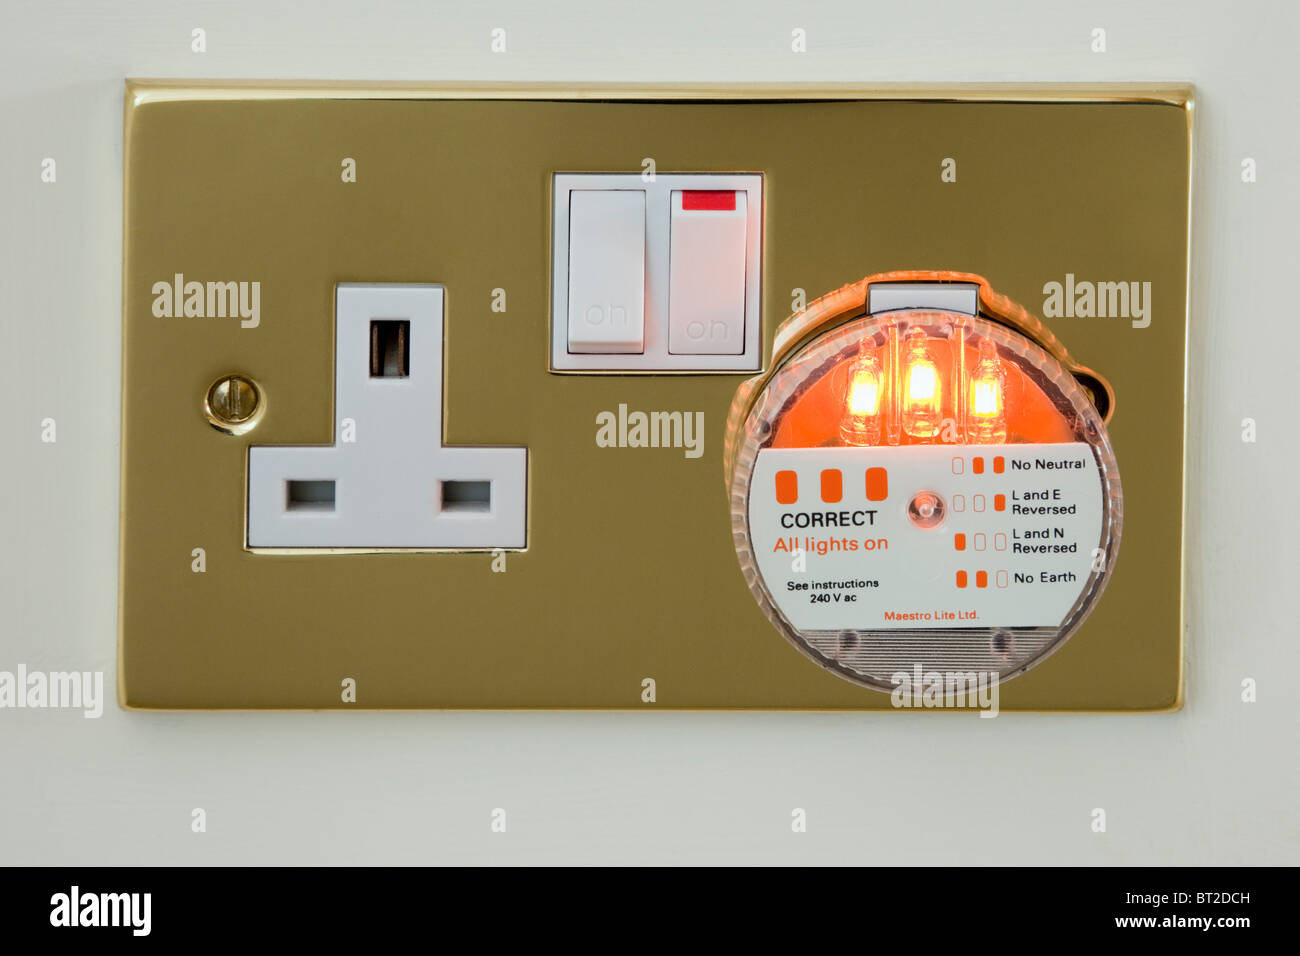 UK Electric Wall Socket Tester Plug Checking Mains Electricity Wiring With Three Indicator Lights On To Show Correct Connections